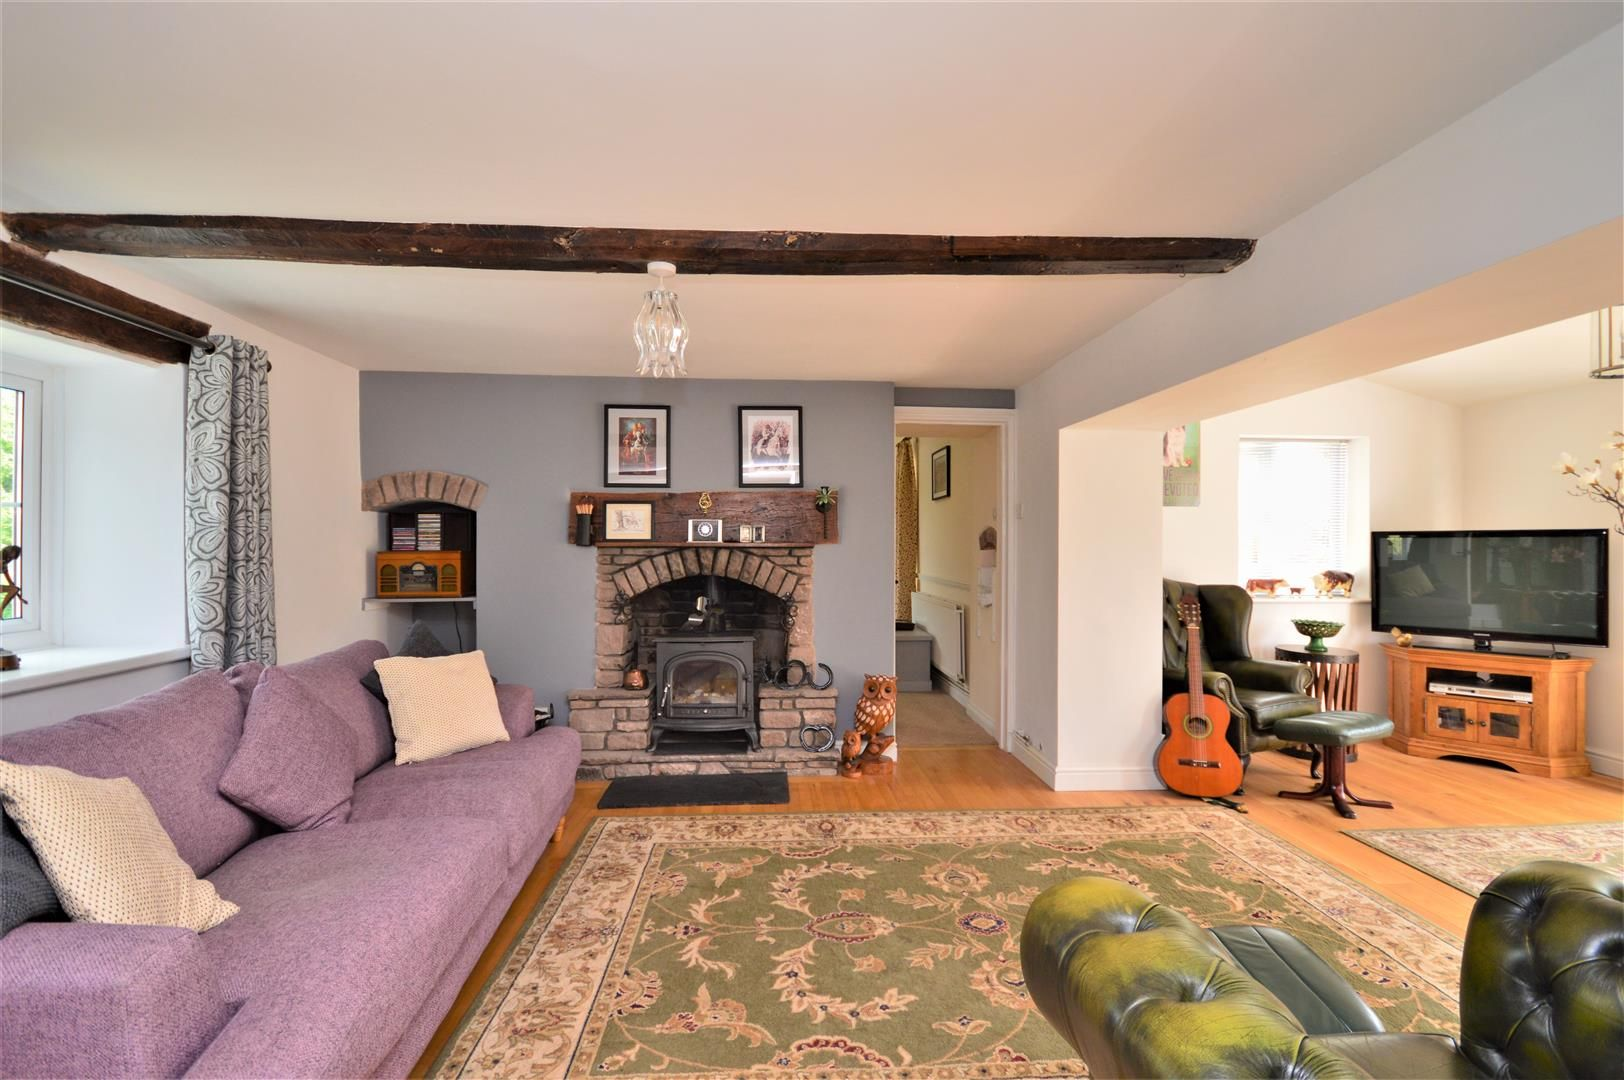 3 bed detached for sale in Orcop  - Property Image 7